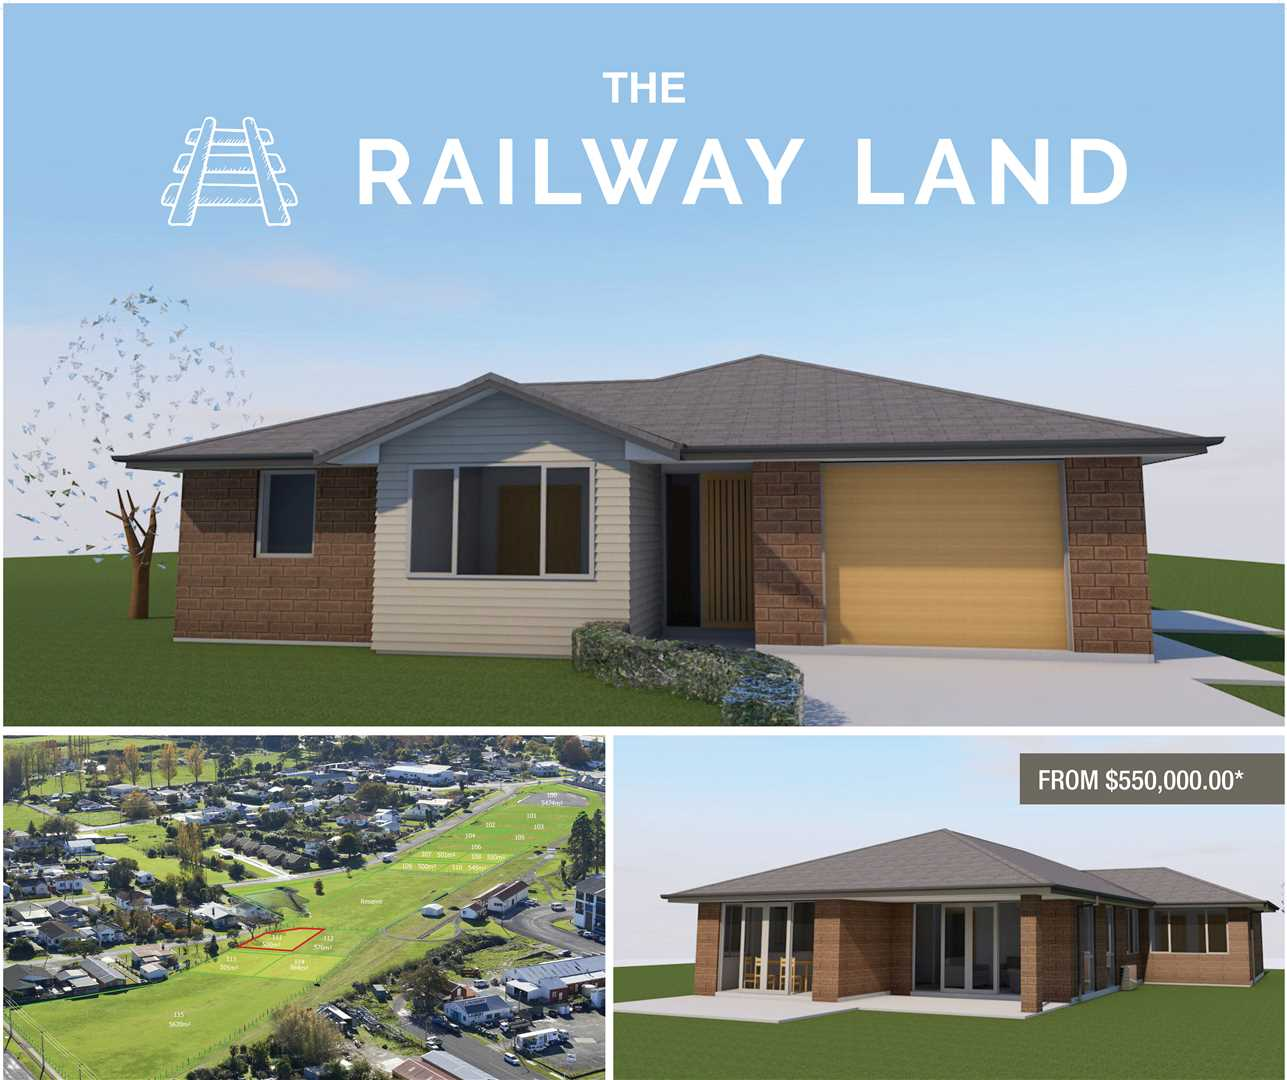 This Will Be At The Railway Land